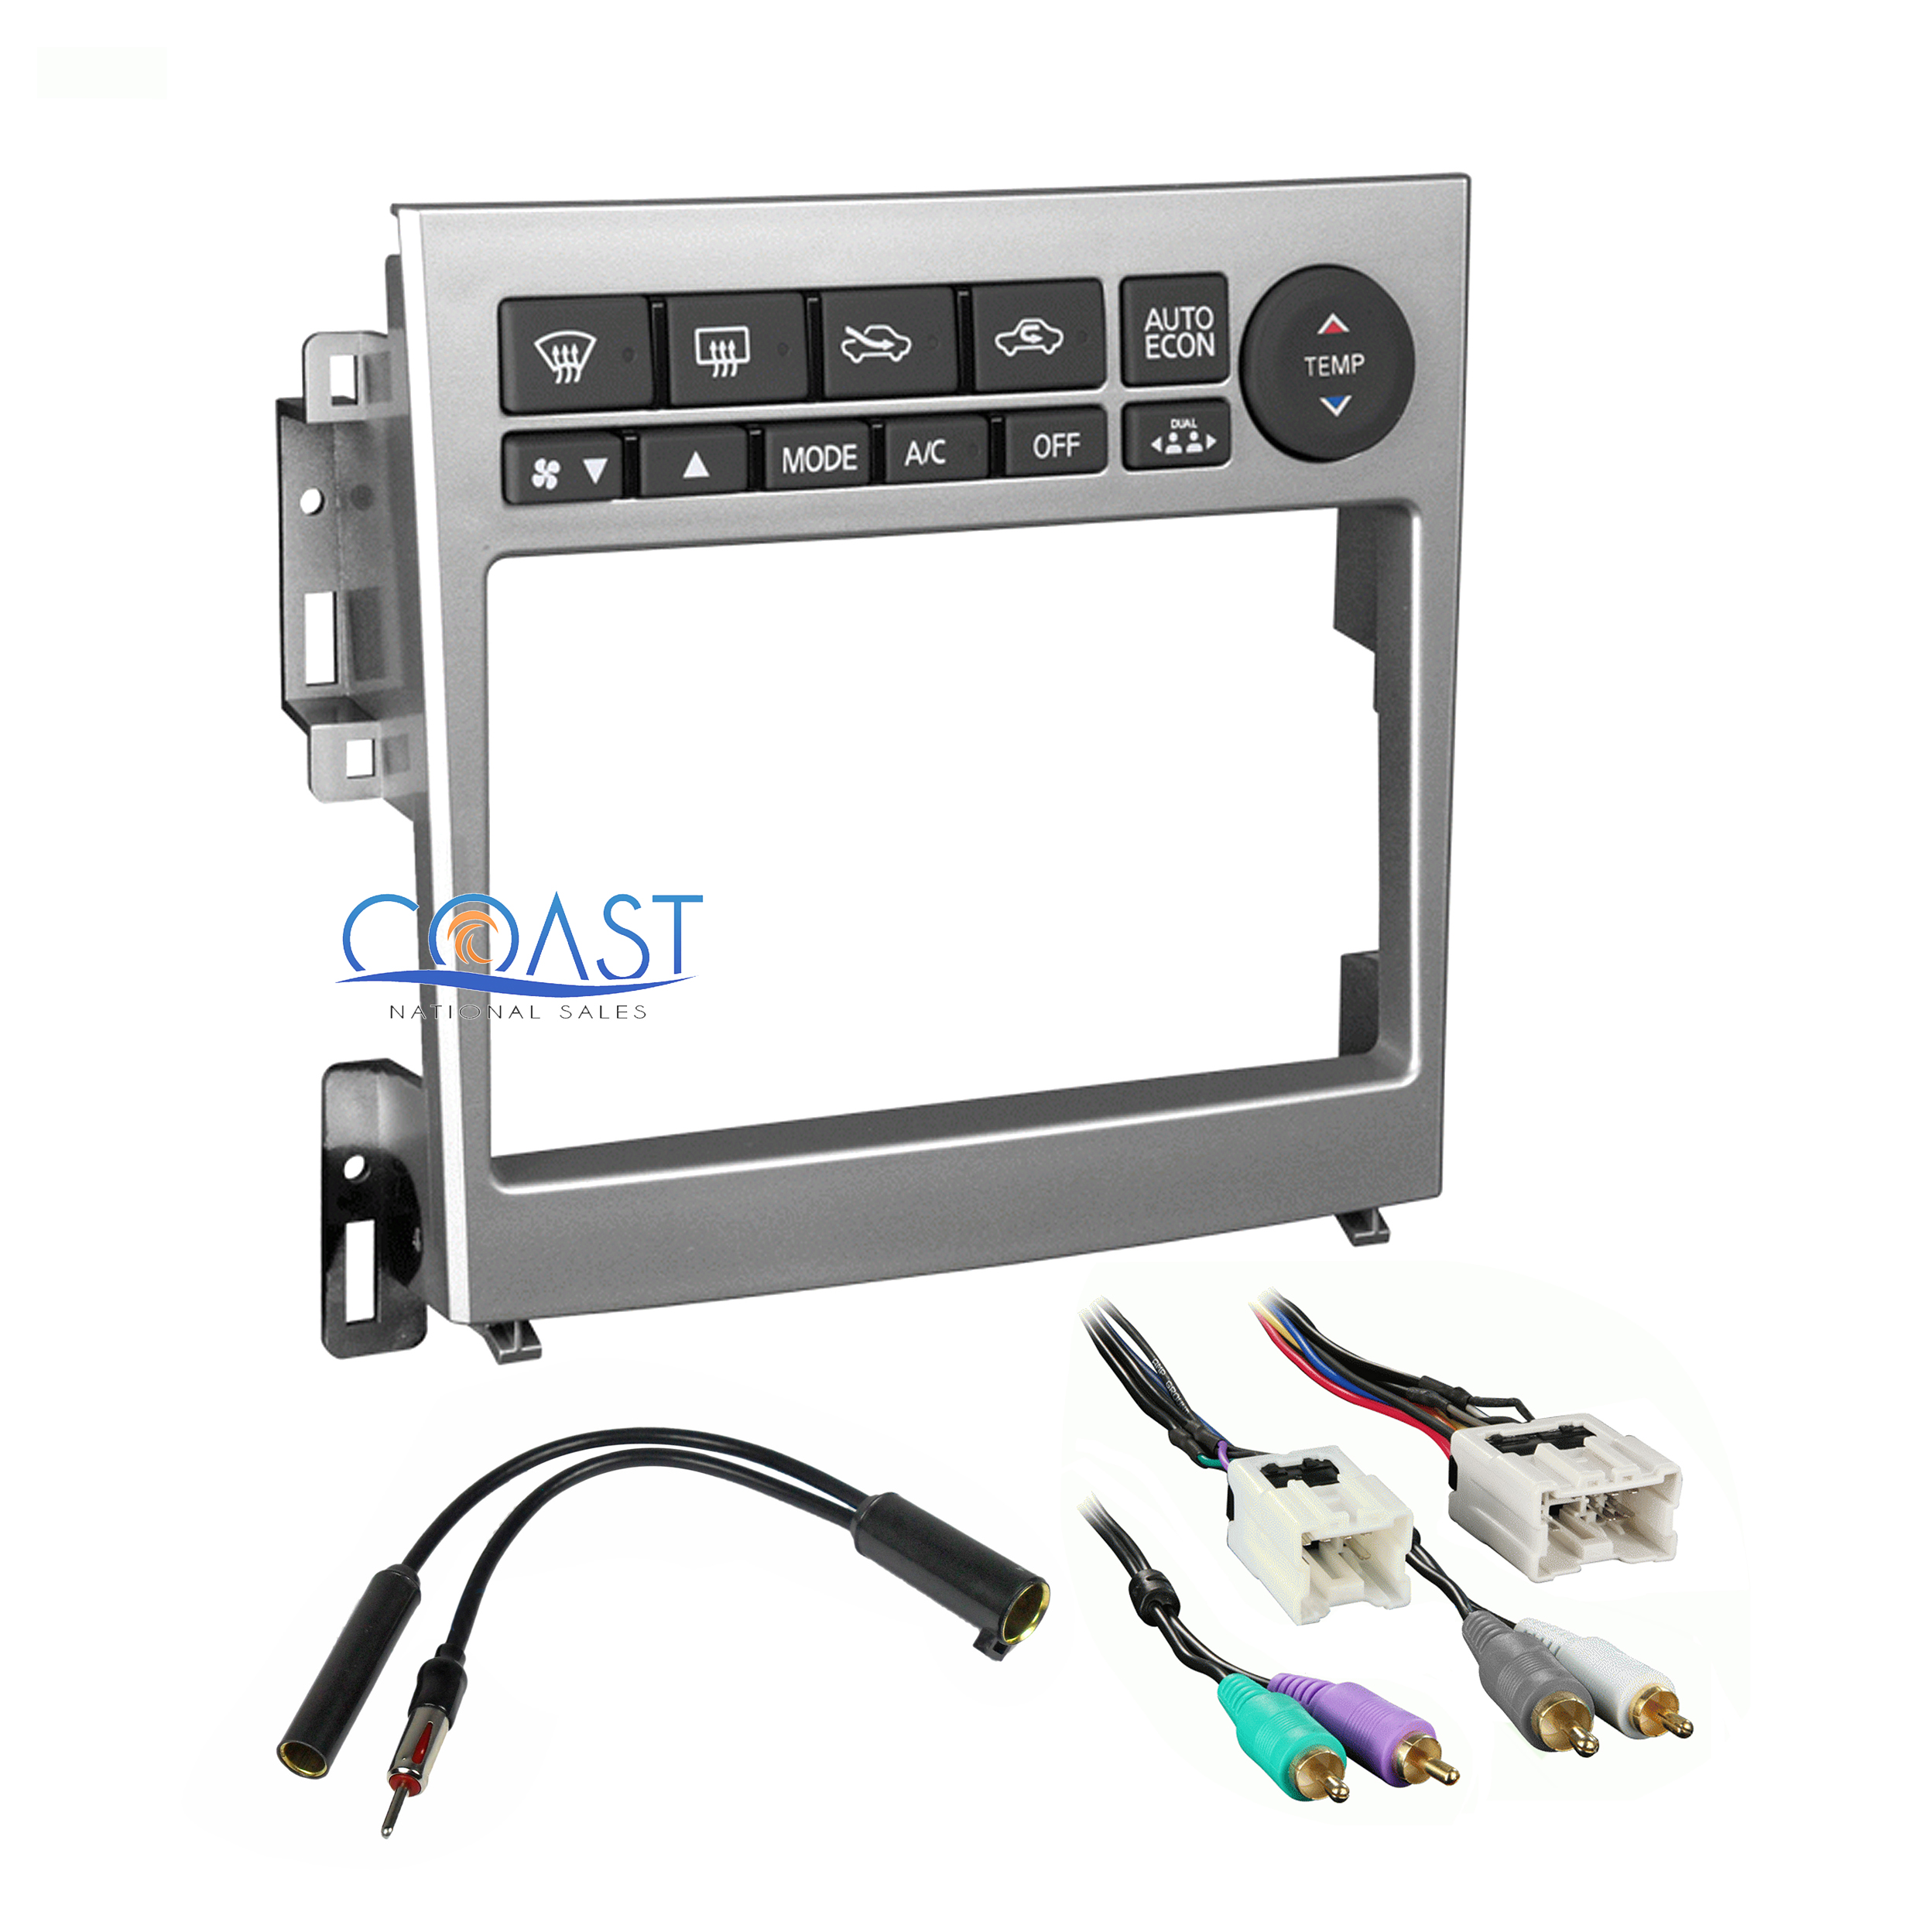 Double din stereo aluminum dash kit harness antenna for